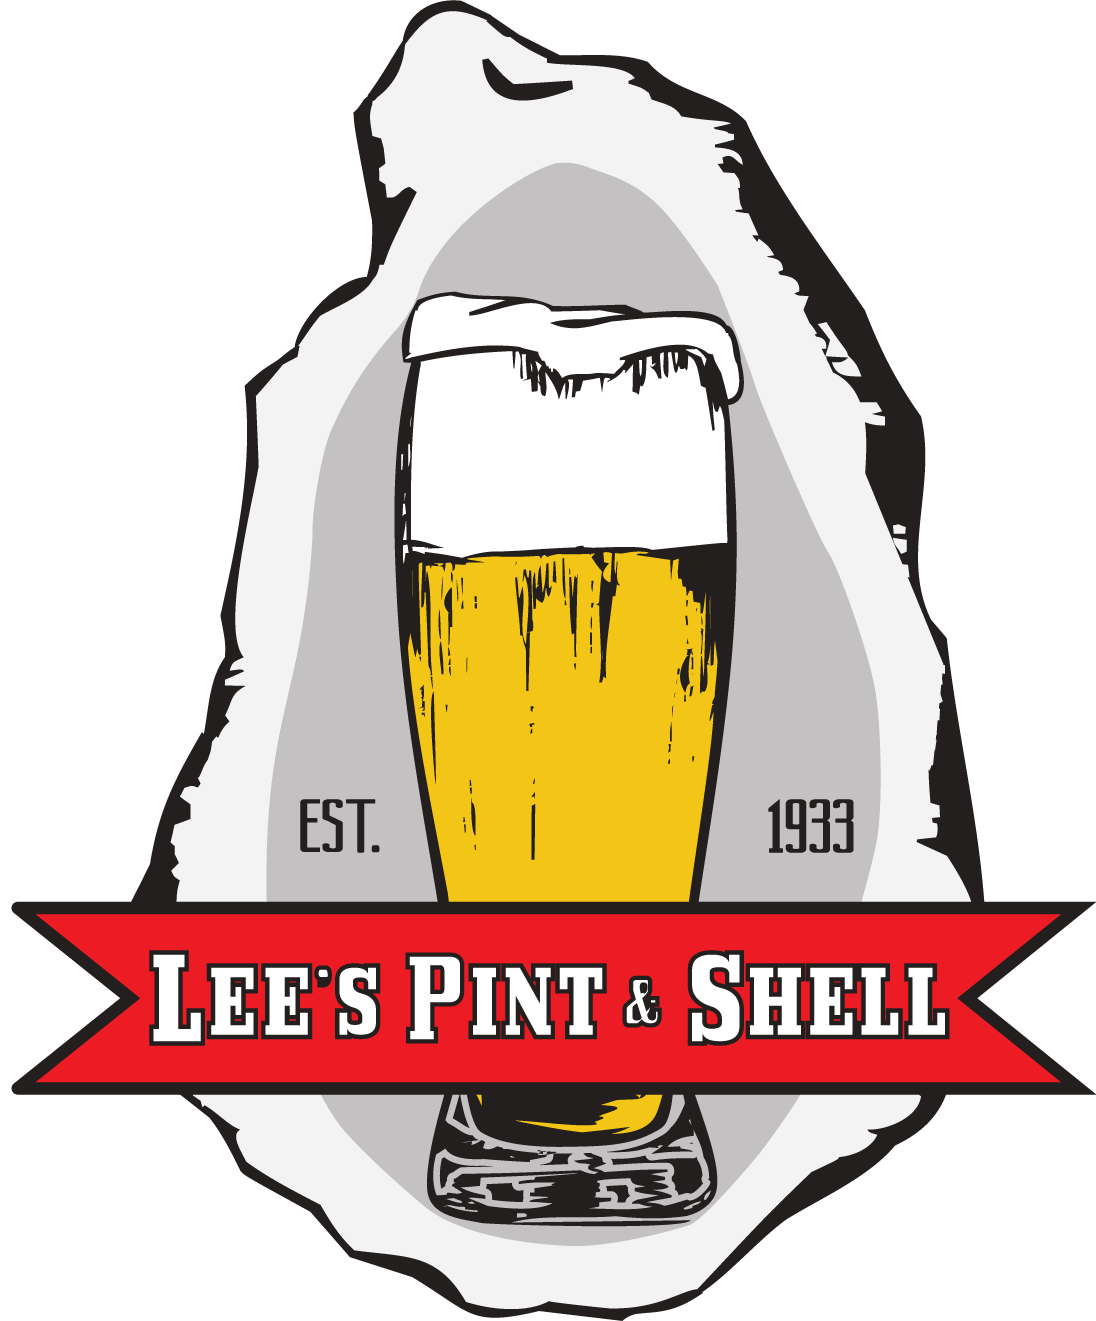 Lee's Pint & Shell